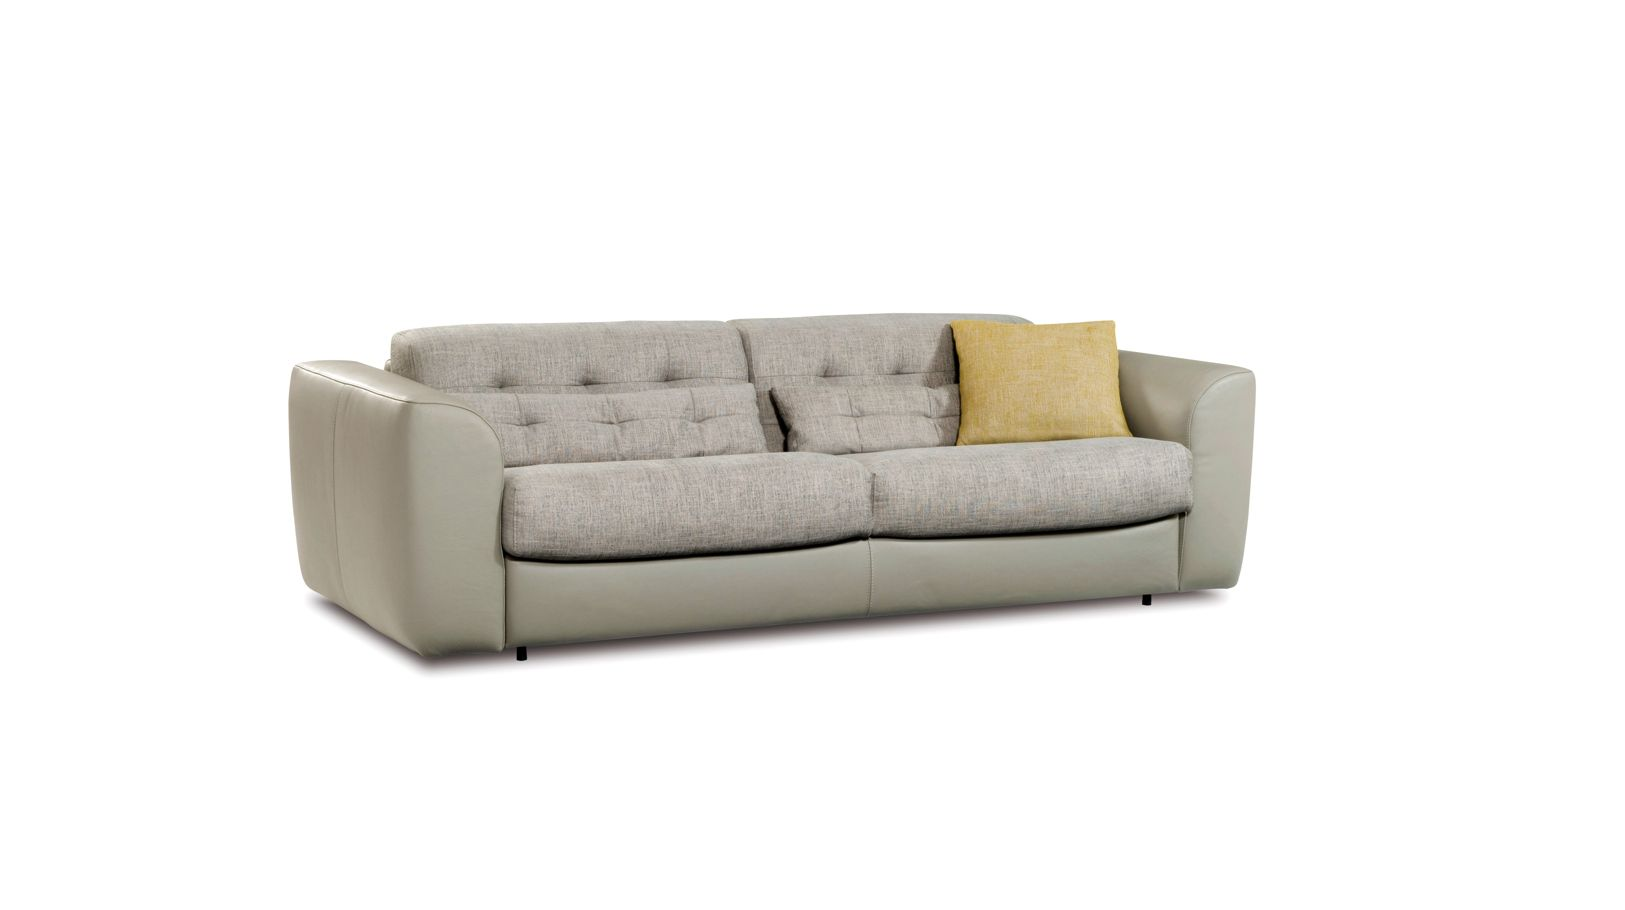 Grand canape convertible 3 places nocturnes roche bobois for Roche bobois france canape